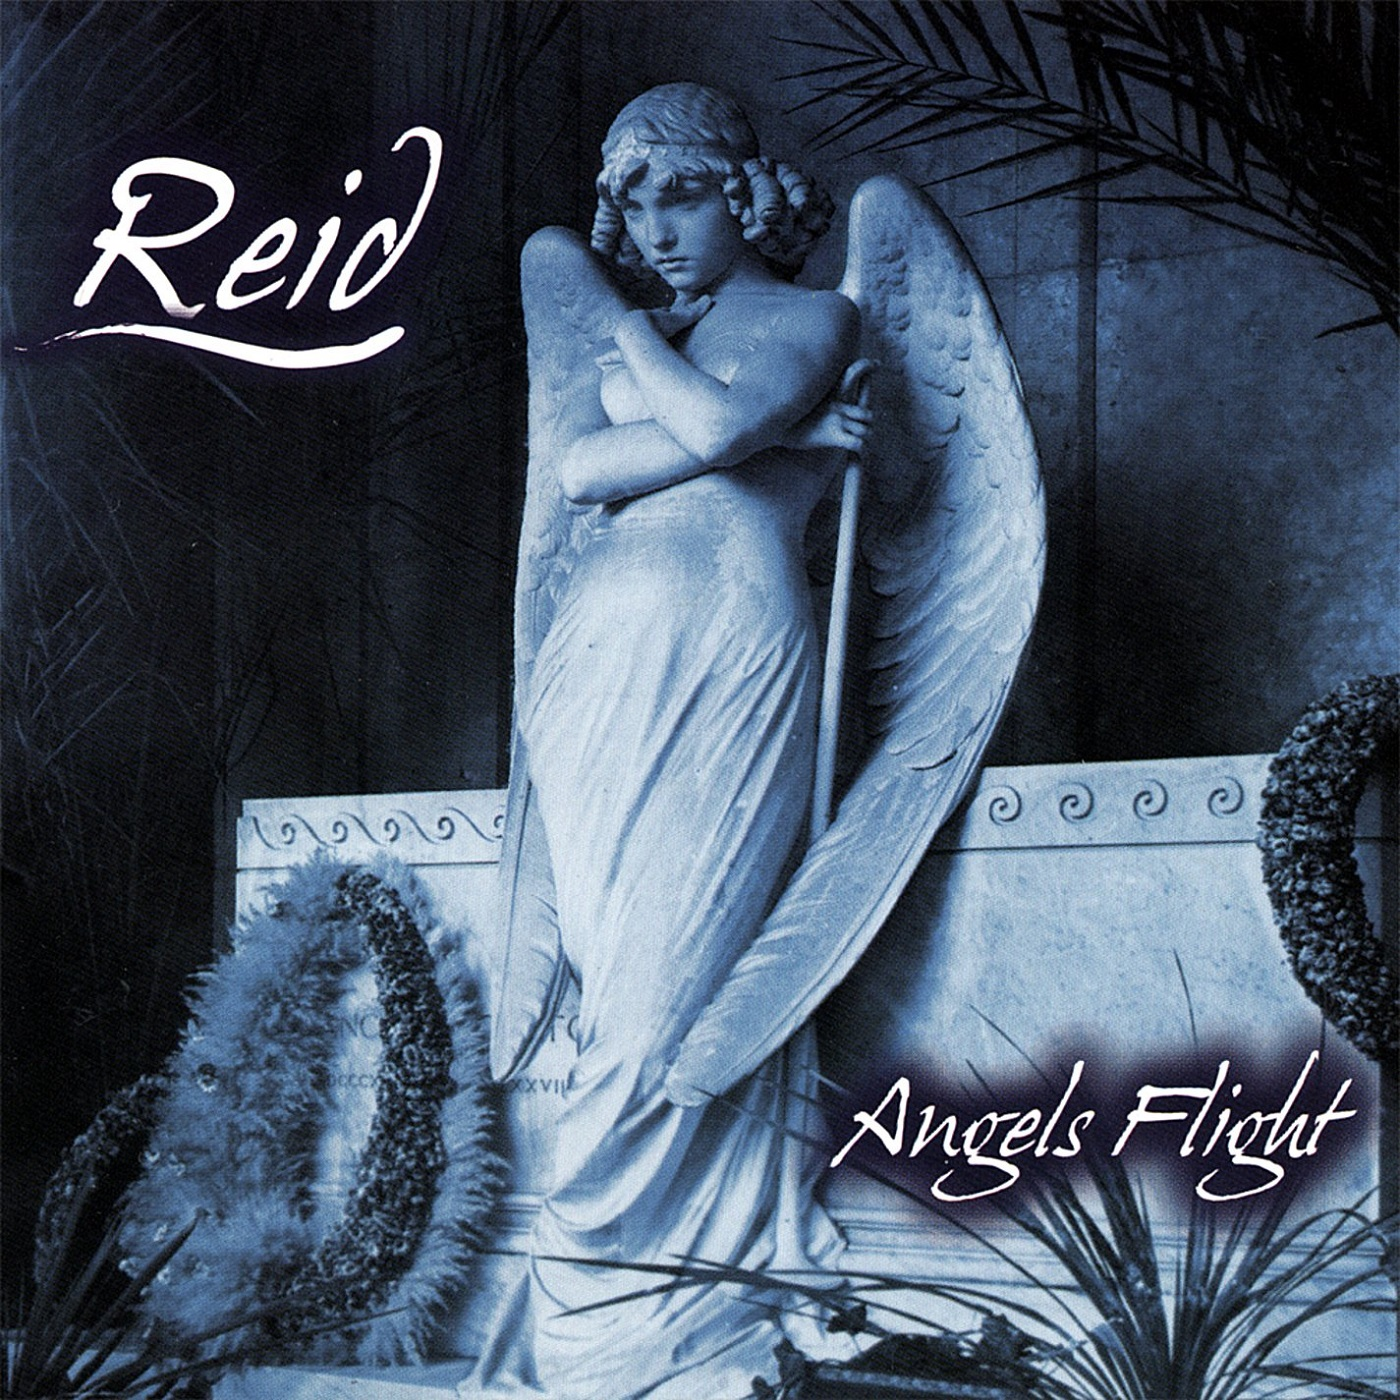 Reid - Angels Flight